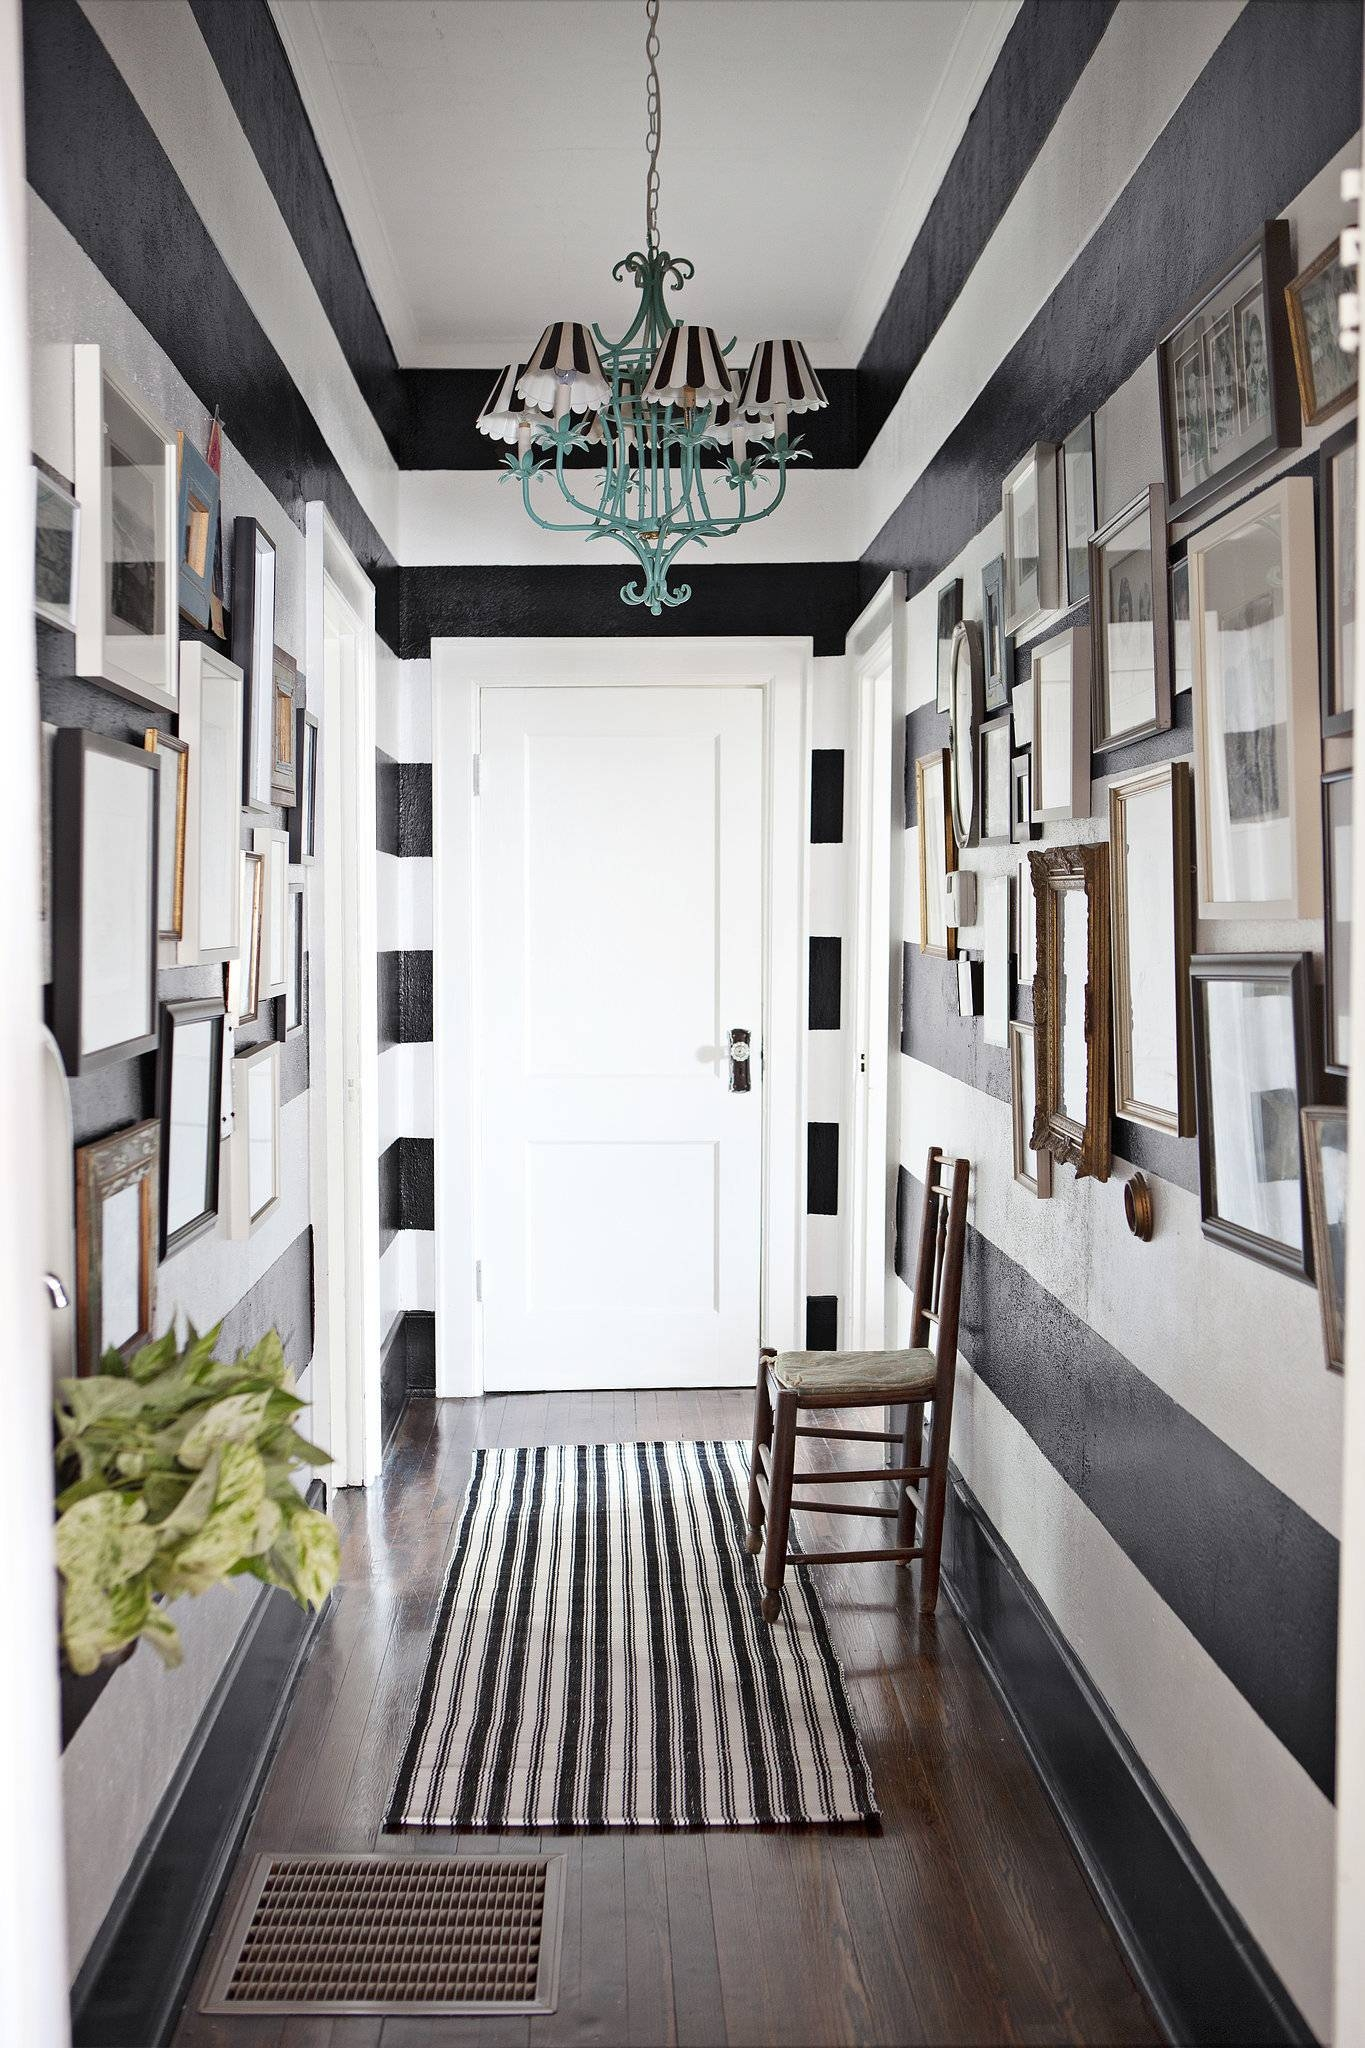 White Wooden Finish Flooring Idea Hallway Wall Art Ideas Lovely With Regard To Recent Wall Art Ideas For Hallways (View 19 of 20)